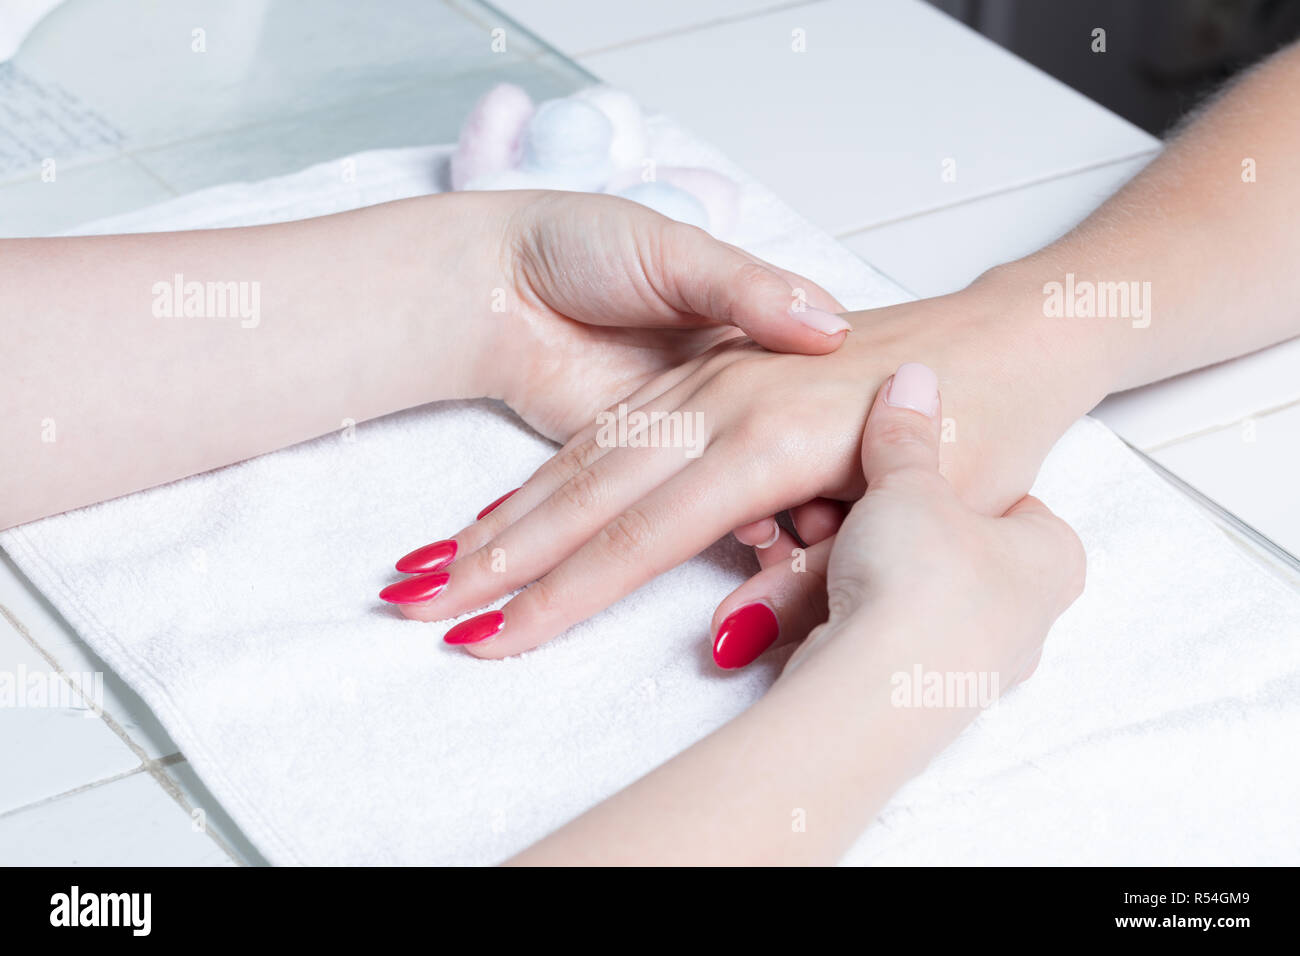 Close up of a hand massage - Stock Image